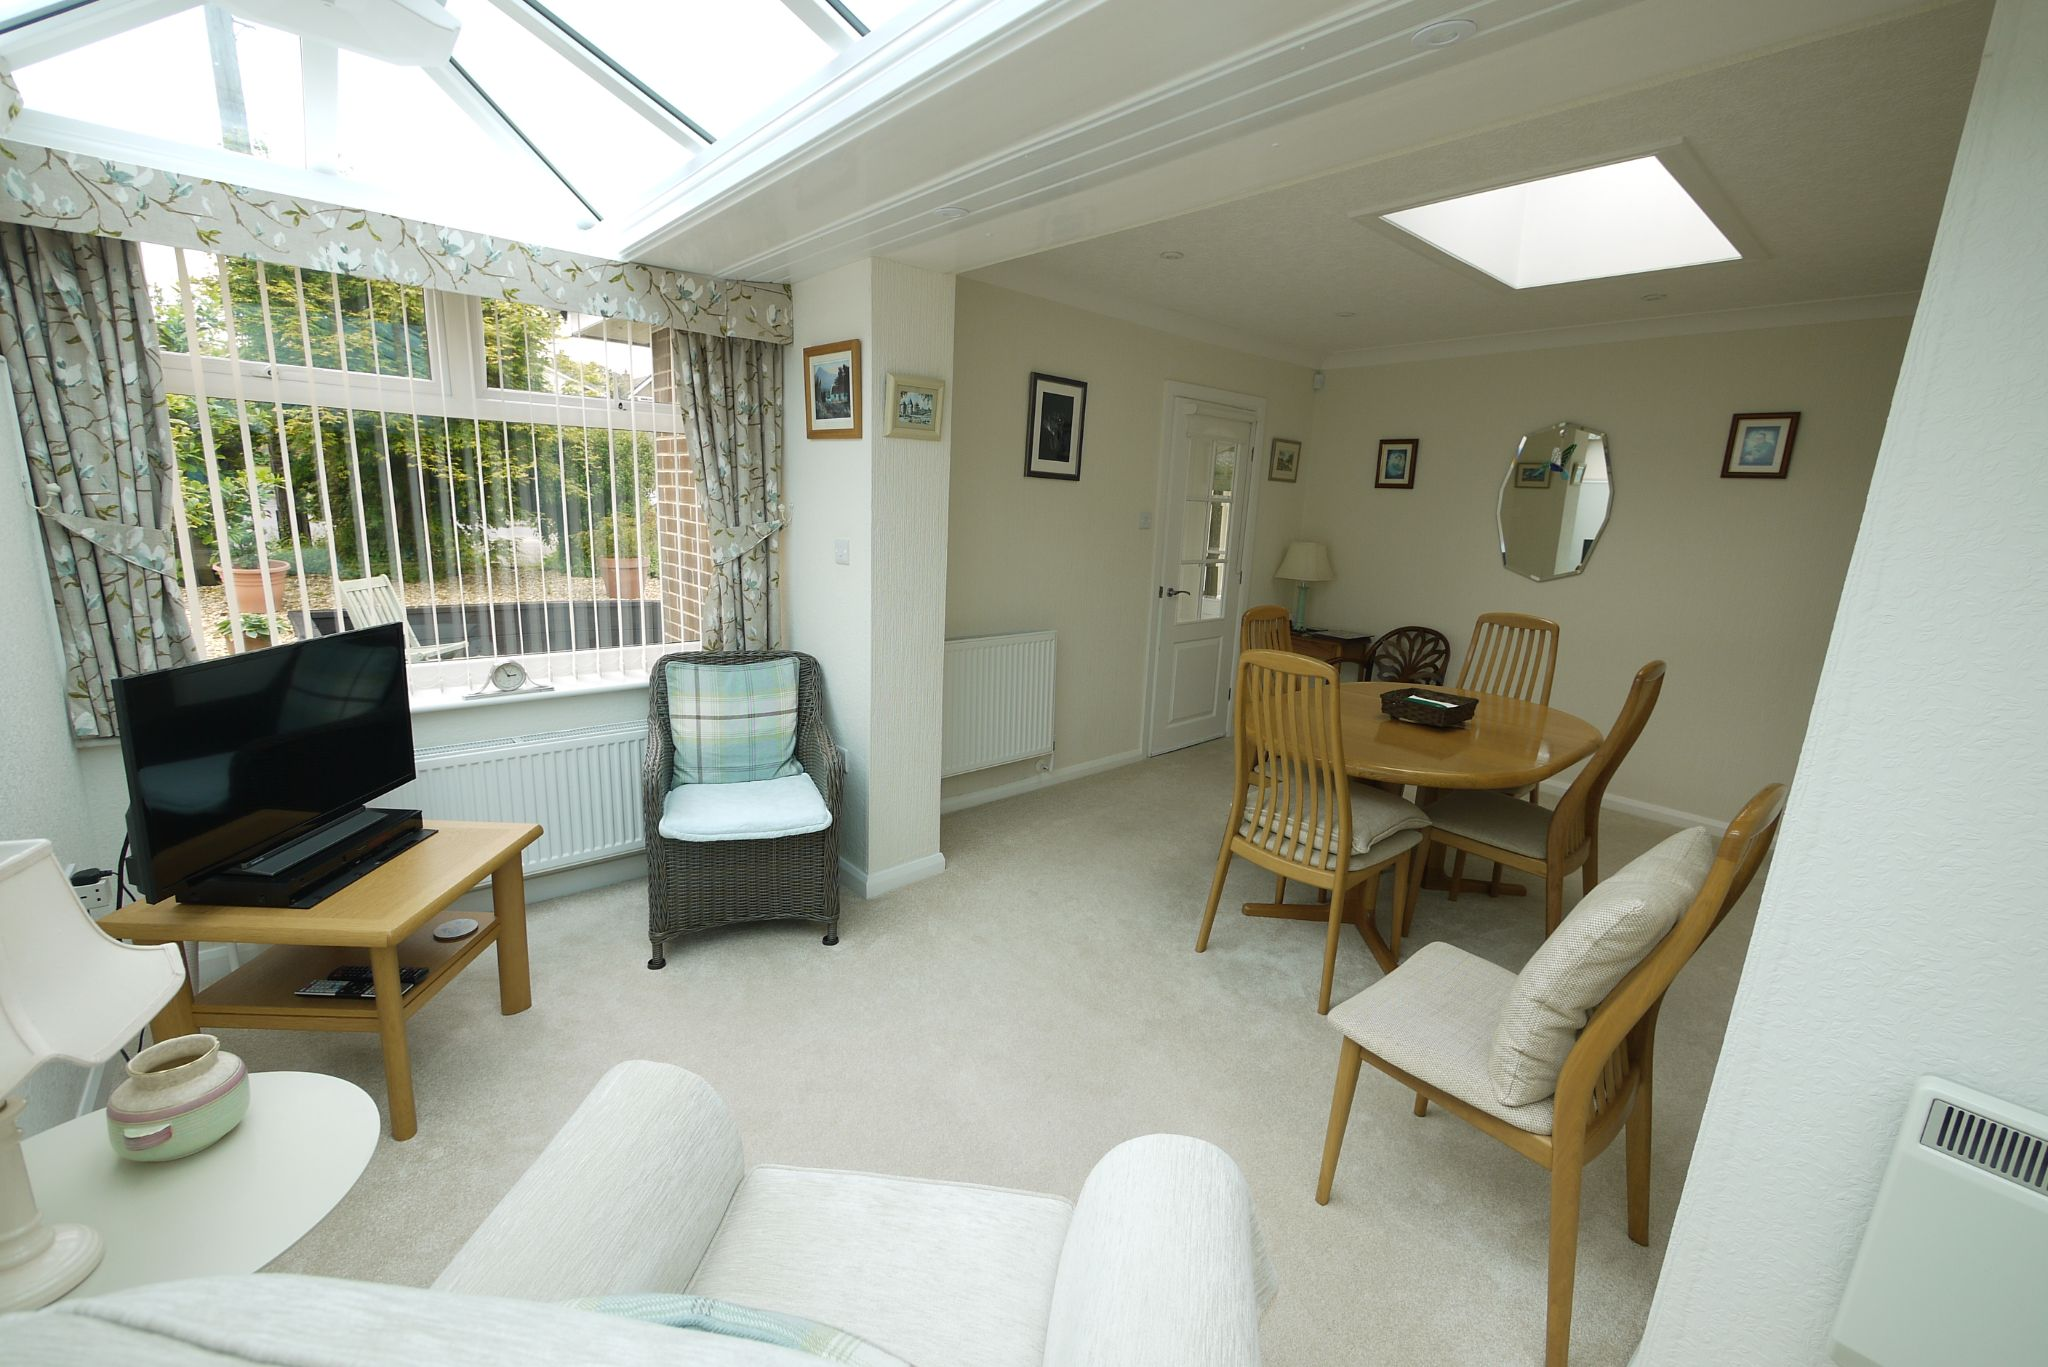 2 bedroom detached bungalow SSTC in Brighouse - Dining room 2.